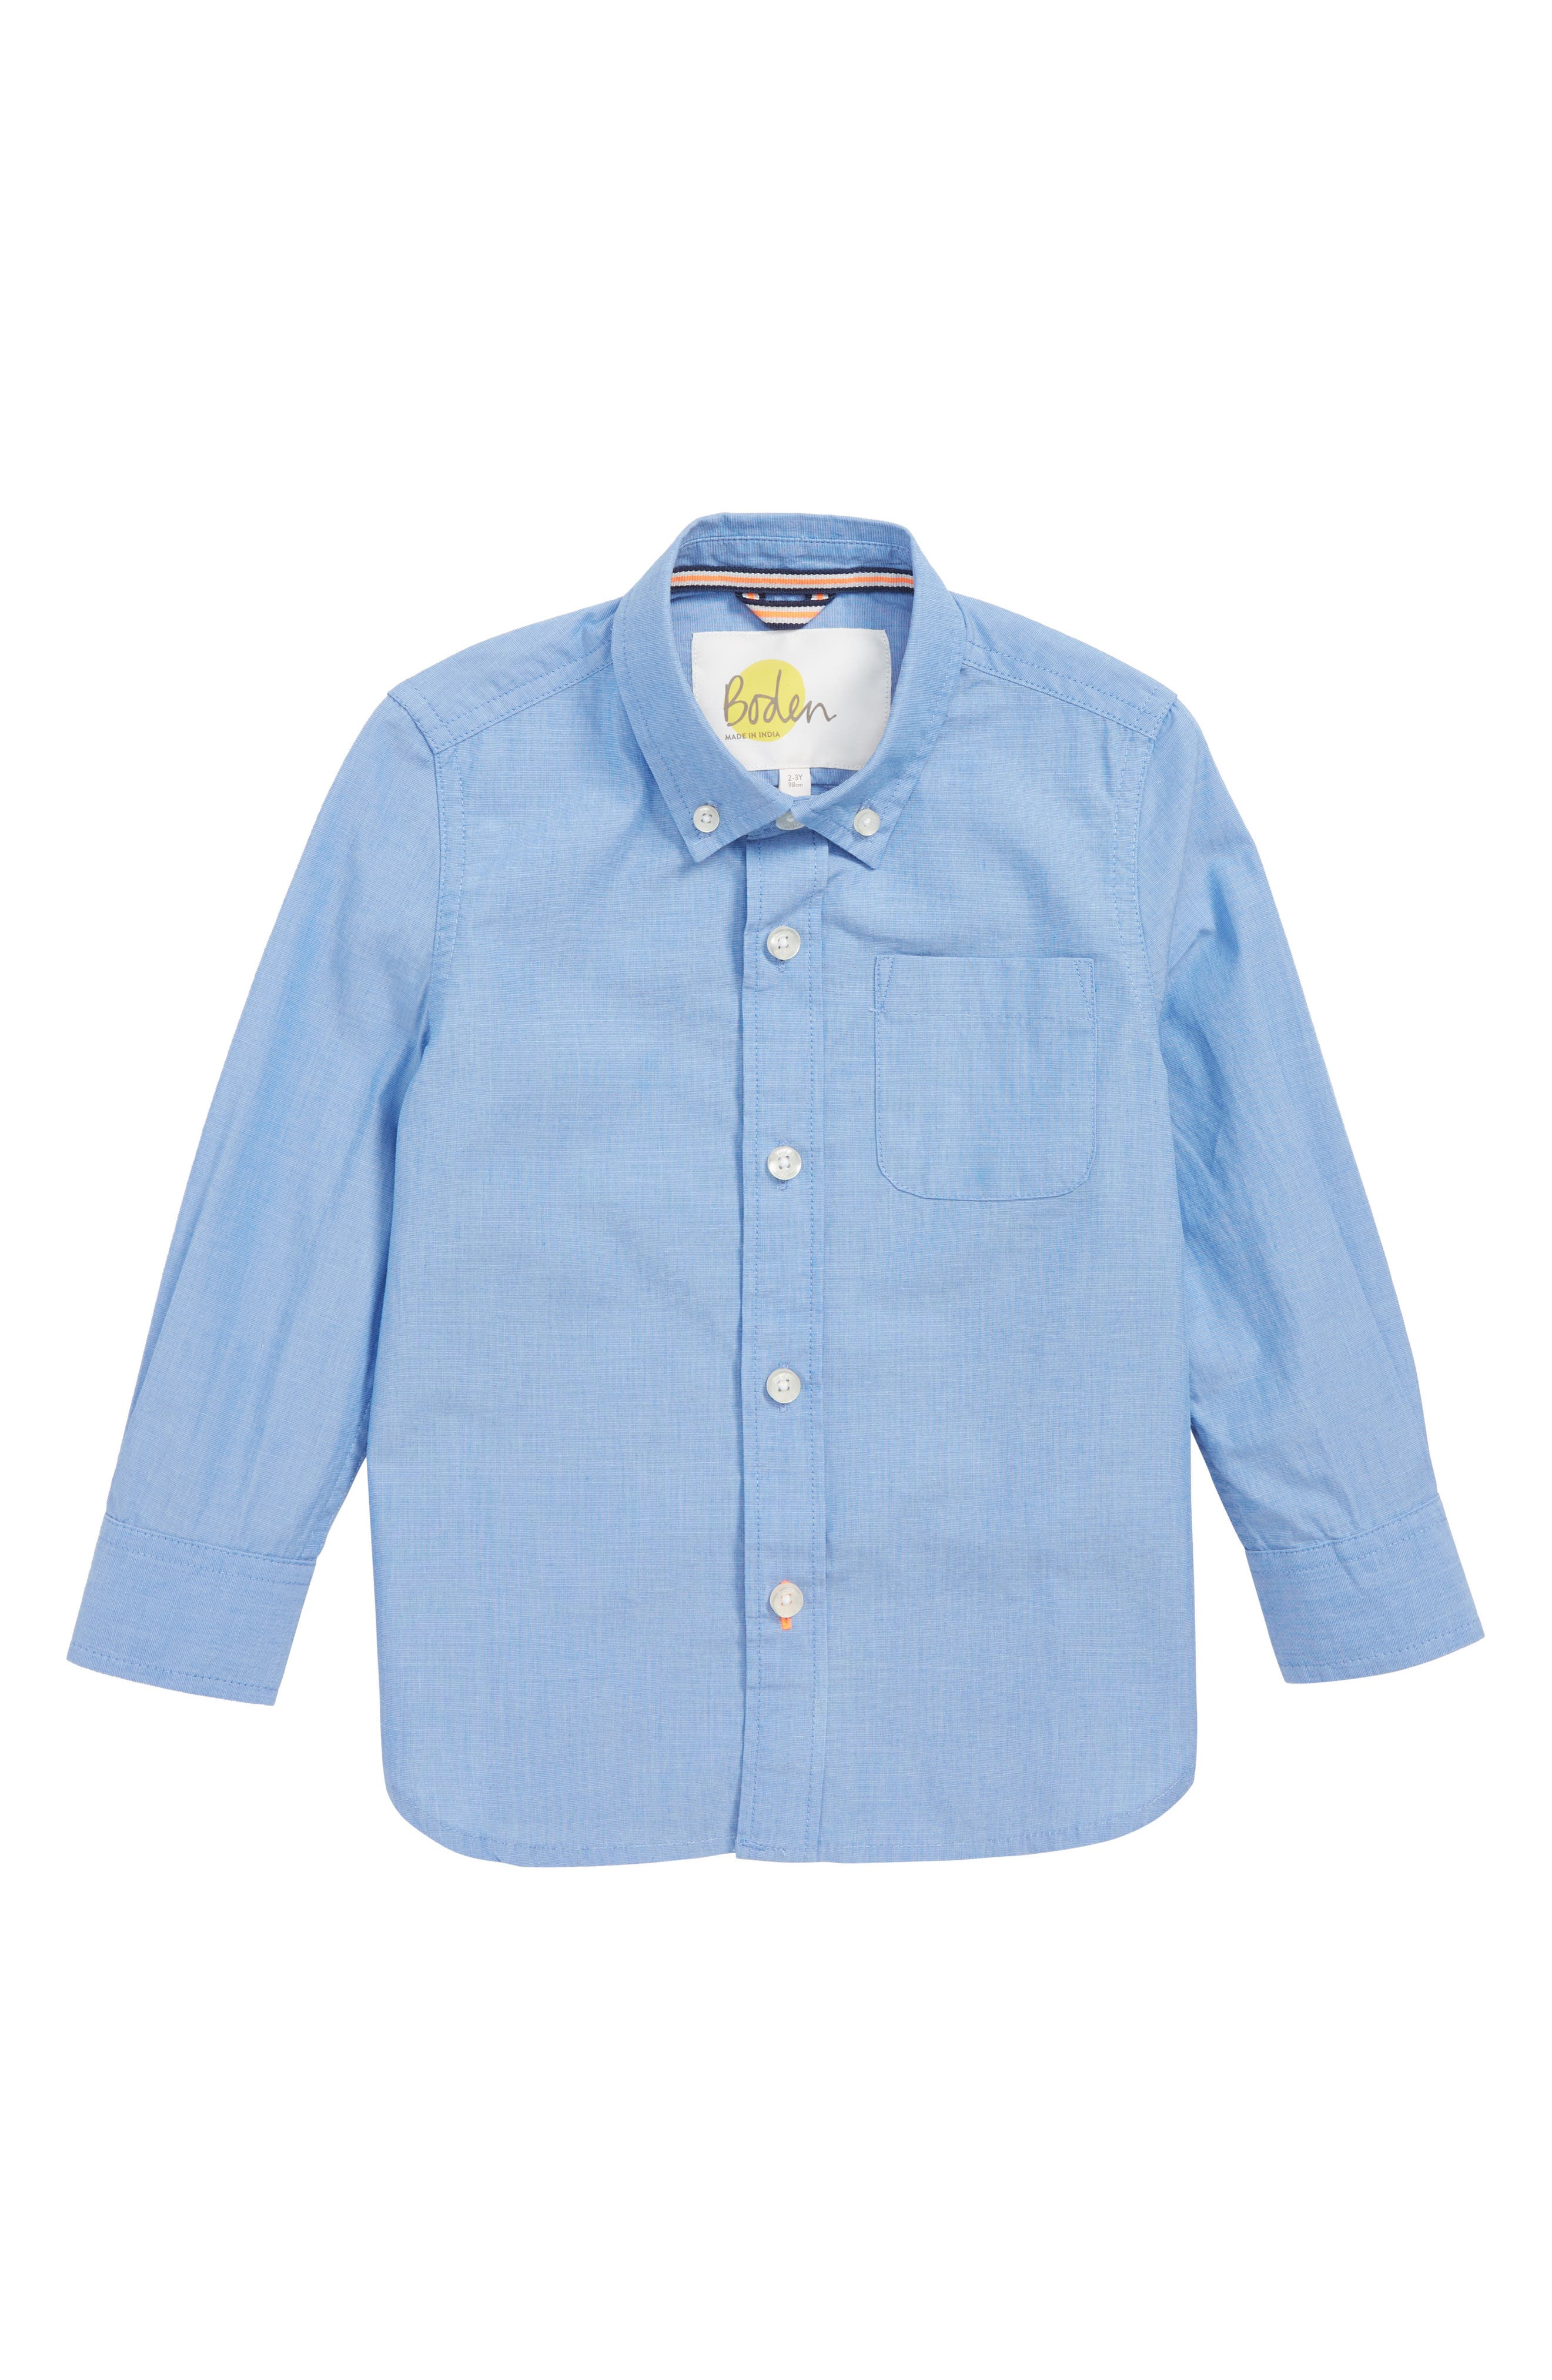 Smart Woven Shirt,                         Main,                         color, WAVE BLUE